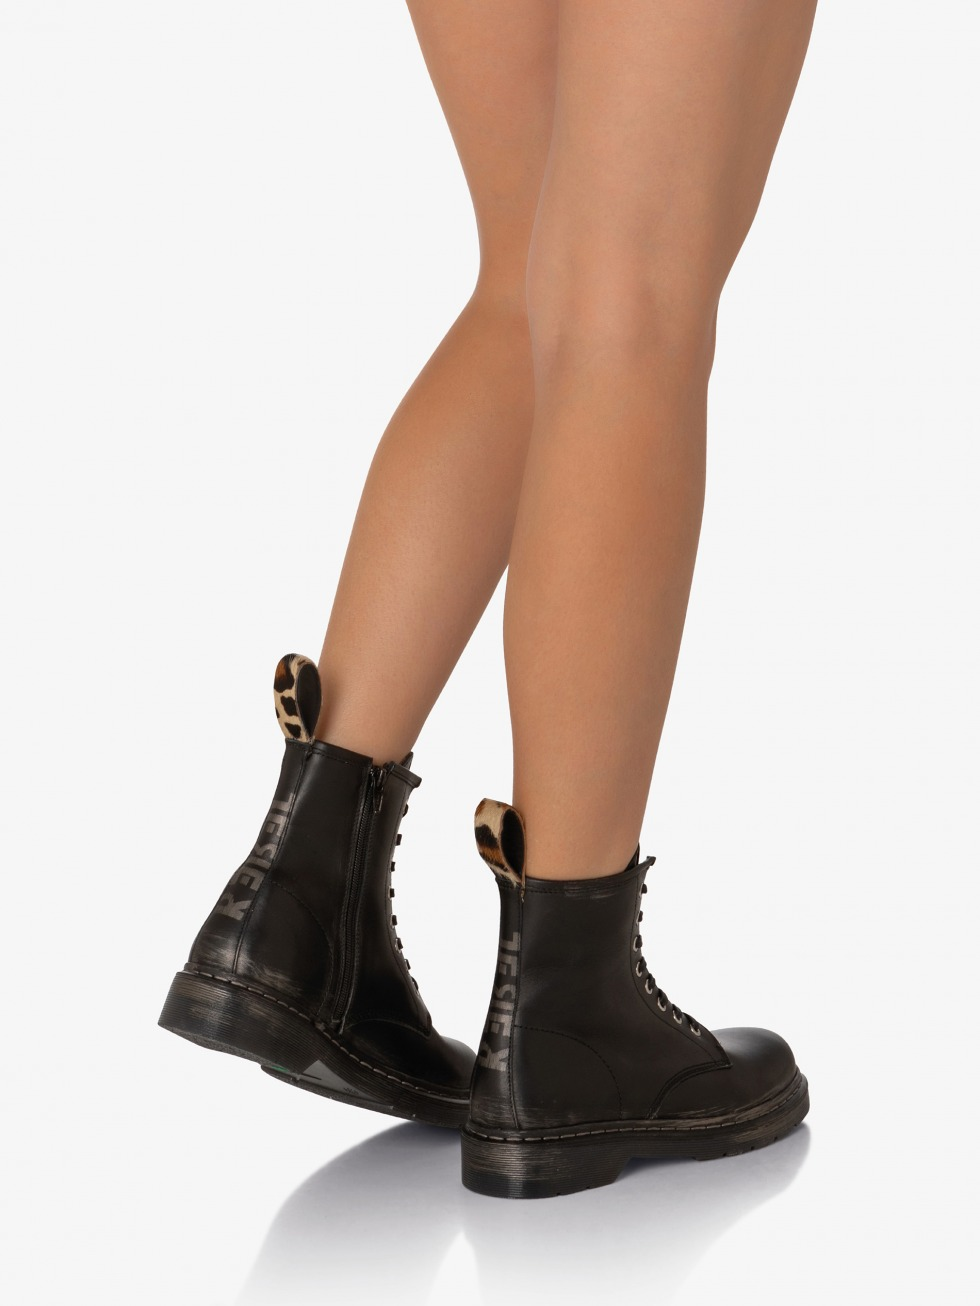 Bloody Mary Africa Pink Boots - Rebel